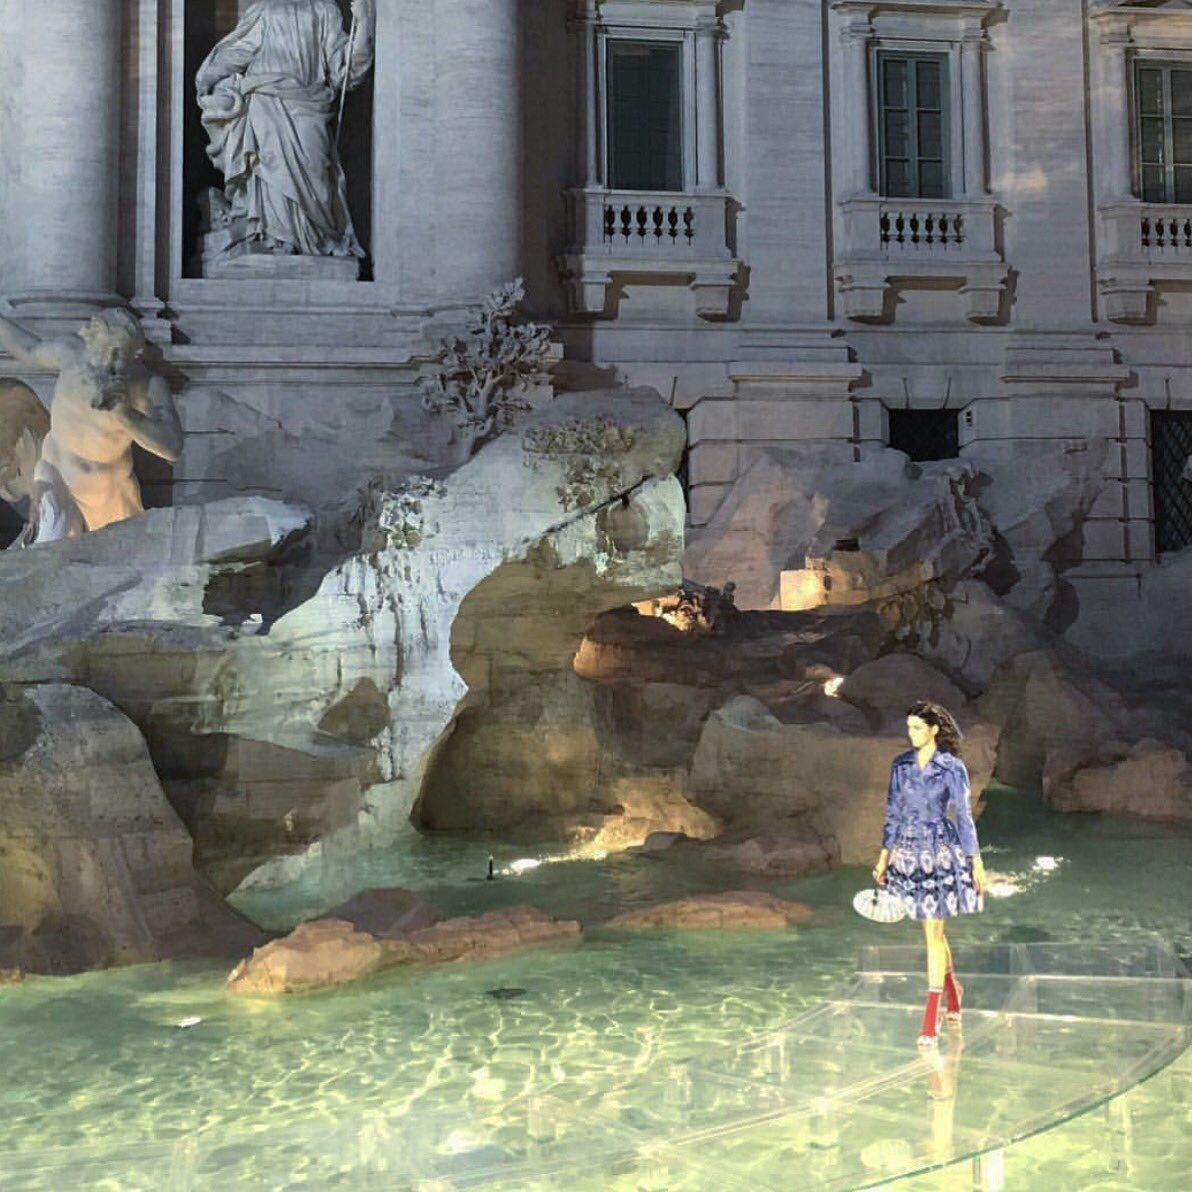 1d6a58ebdd85 Fendi show  walking on water over the Trevi Fountain in Rome ...